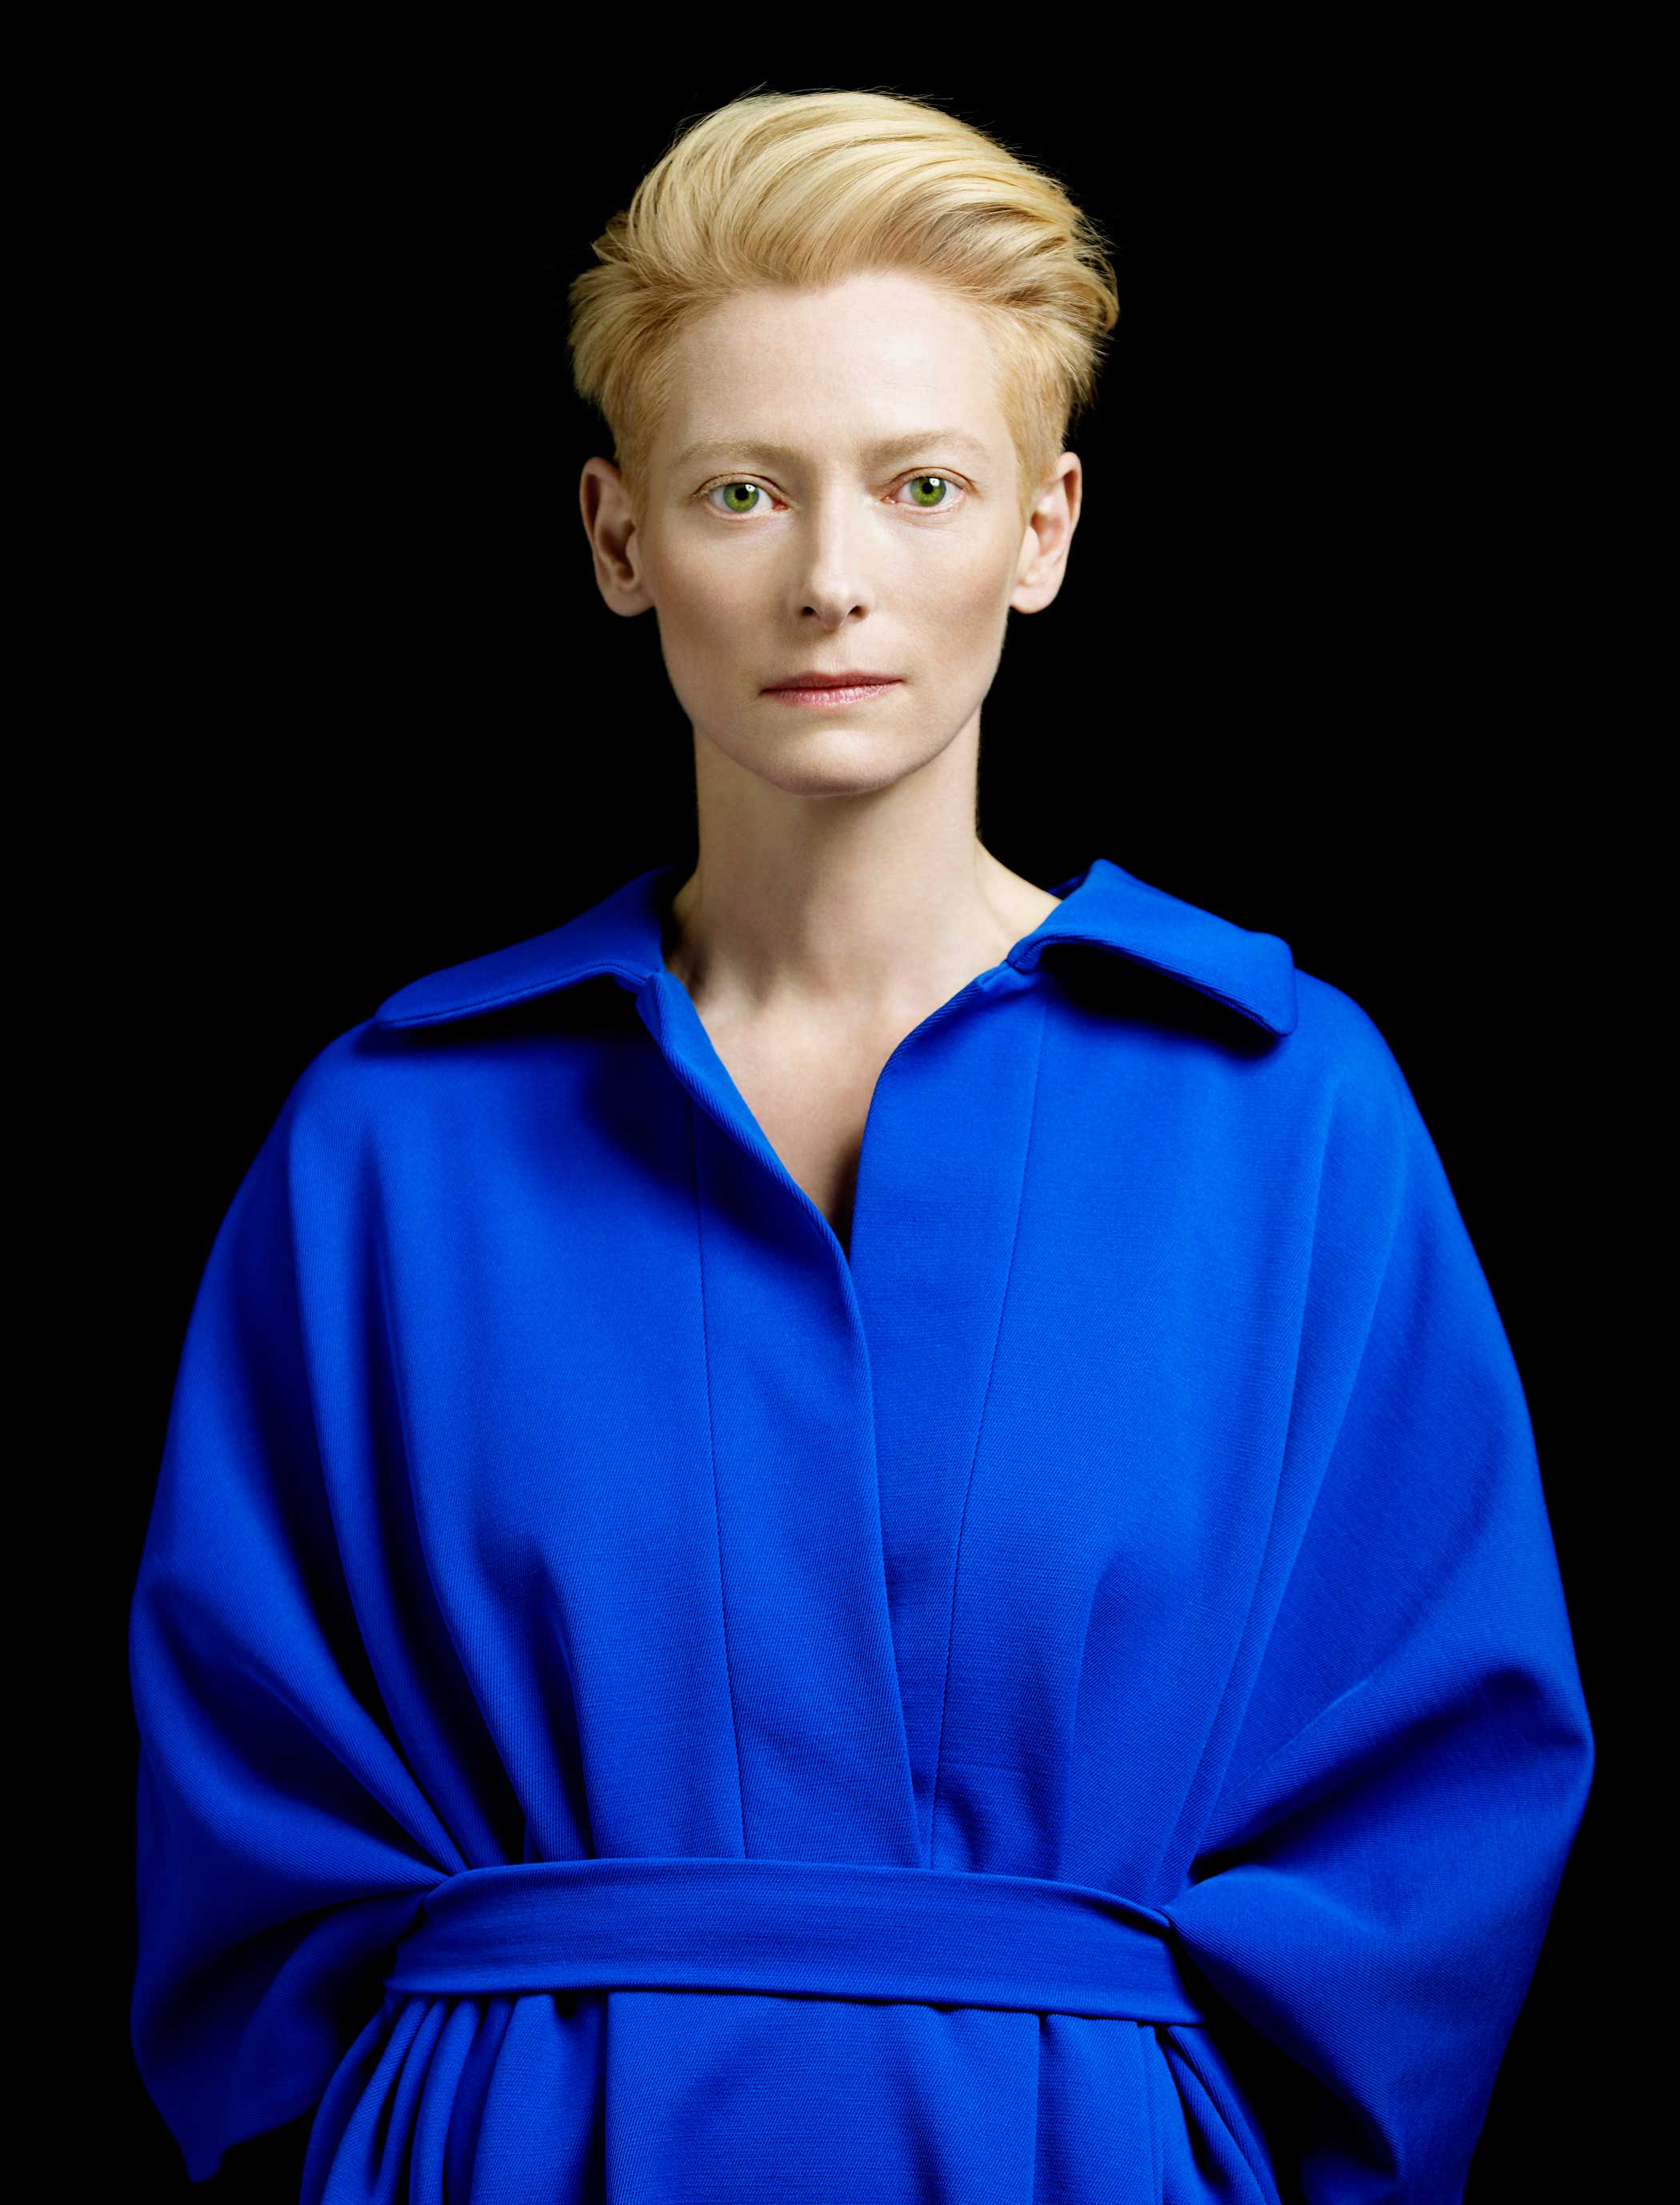 Tilda Swinton in 2012 photographed as an honoree for that year's TIME 100.